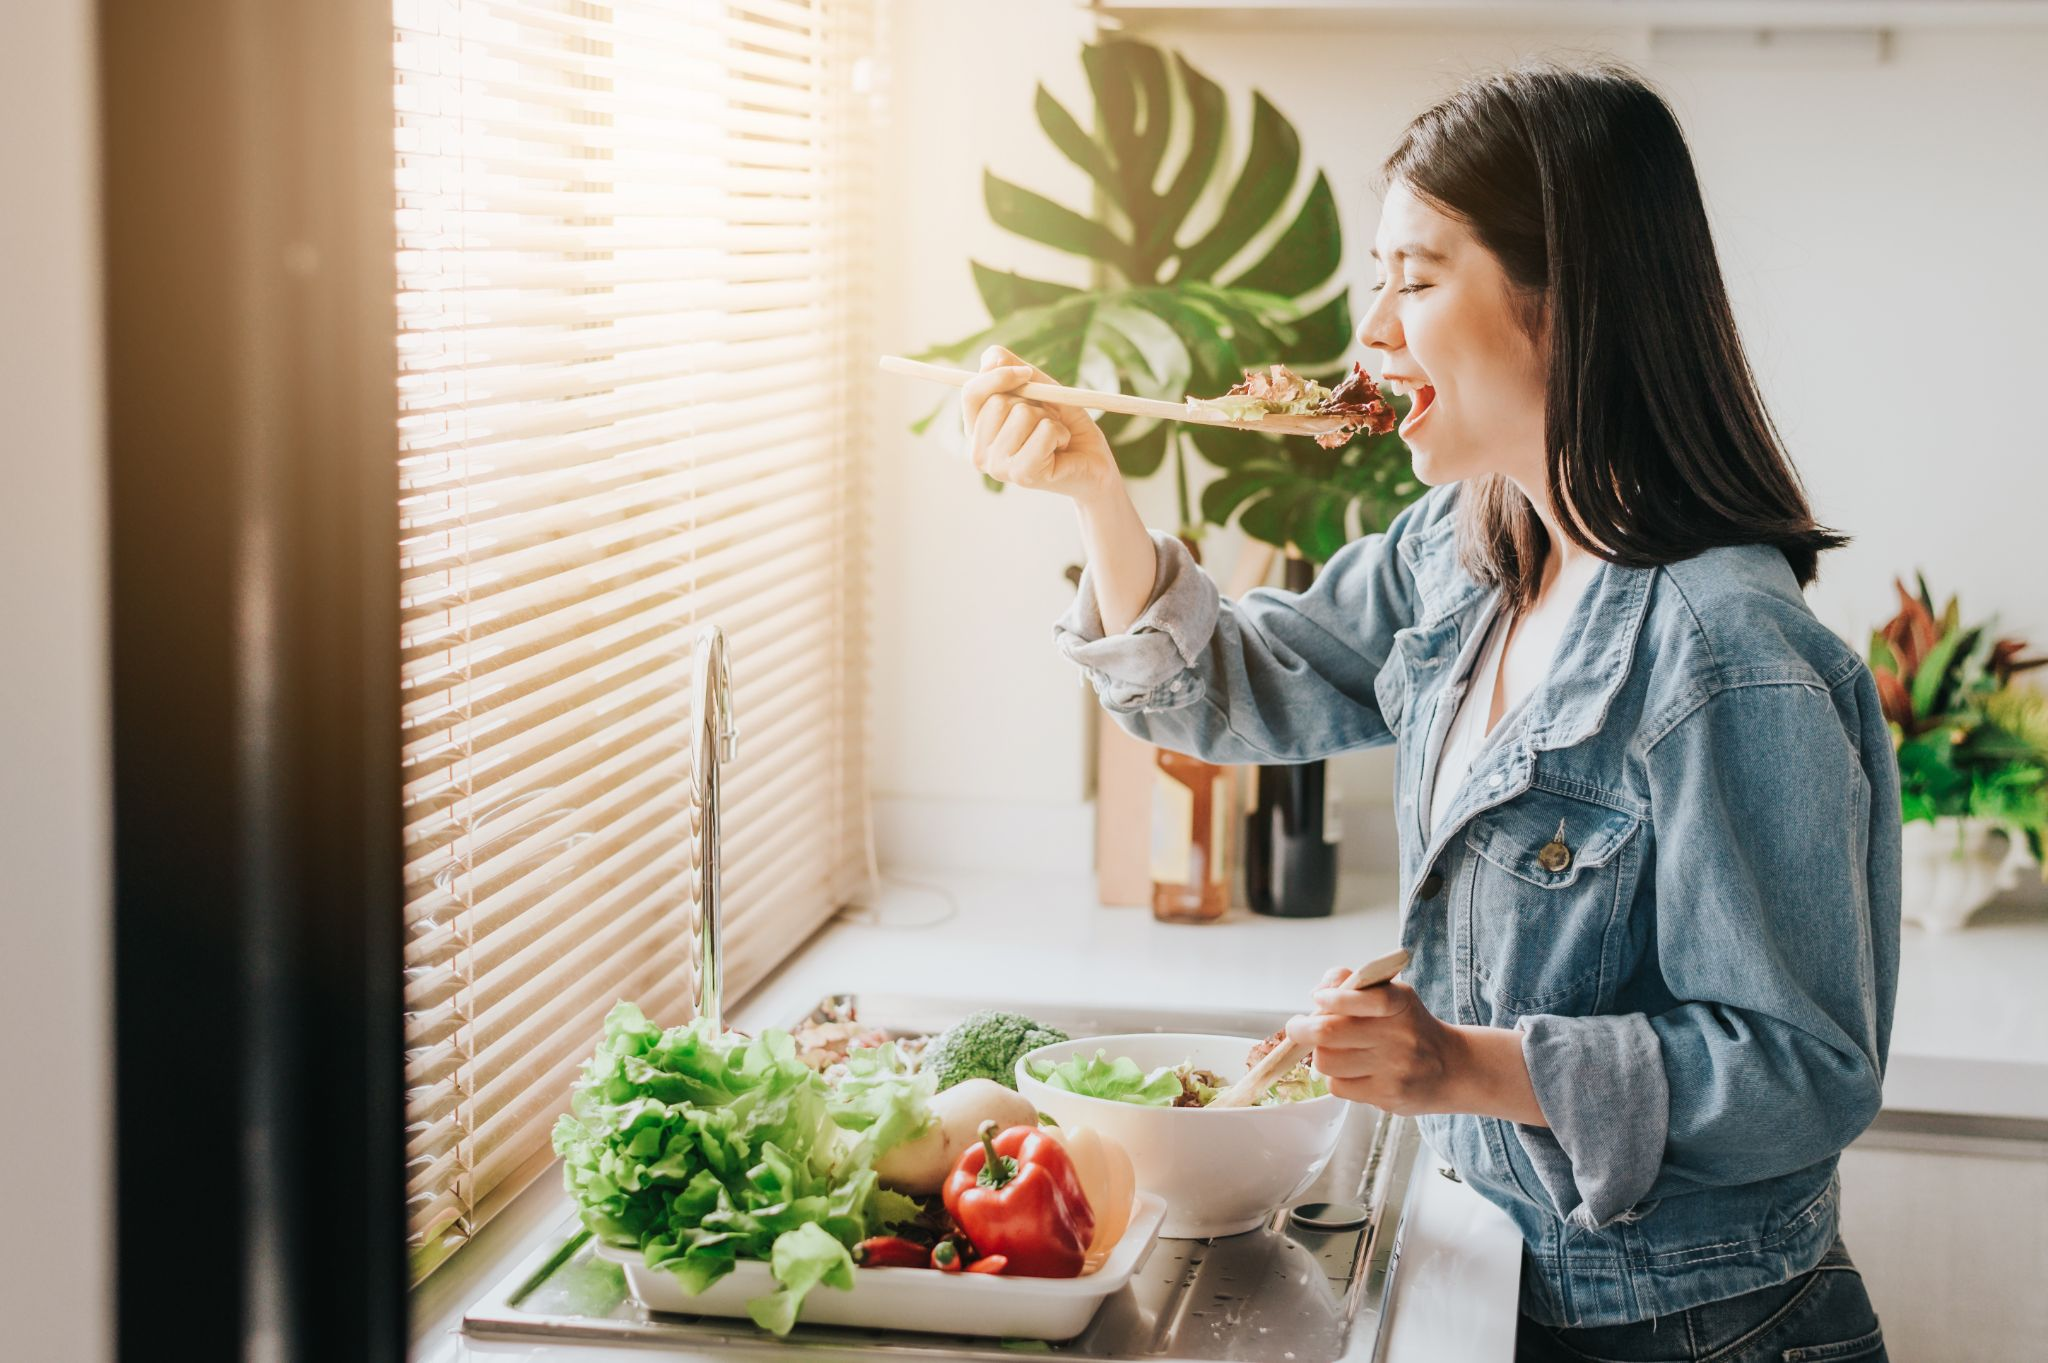 Happy woman eating fresh vegetables while preparing salad in kitchen